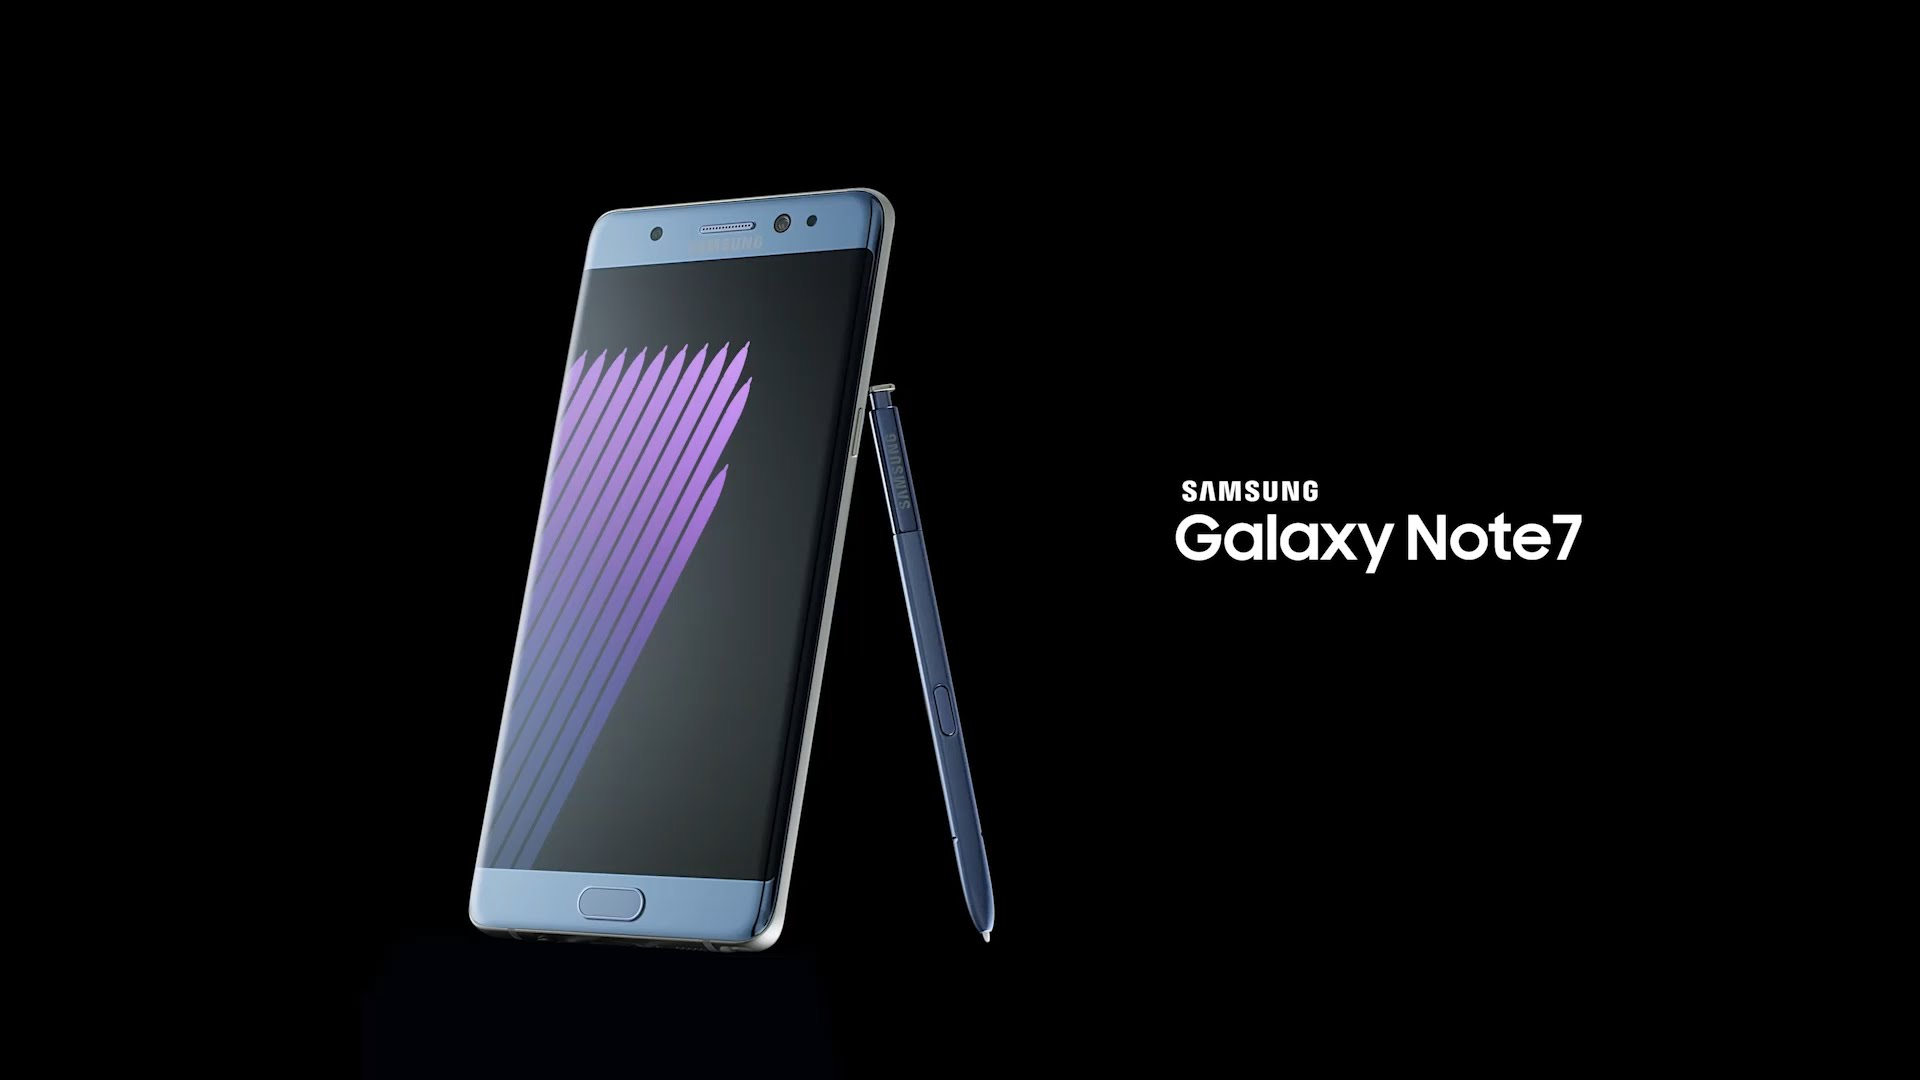 Galaxy Note 5 Wallpapers Hd: Nearly 80,000 Users Are Still In Possession Of The Galaxy